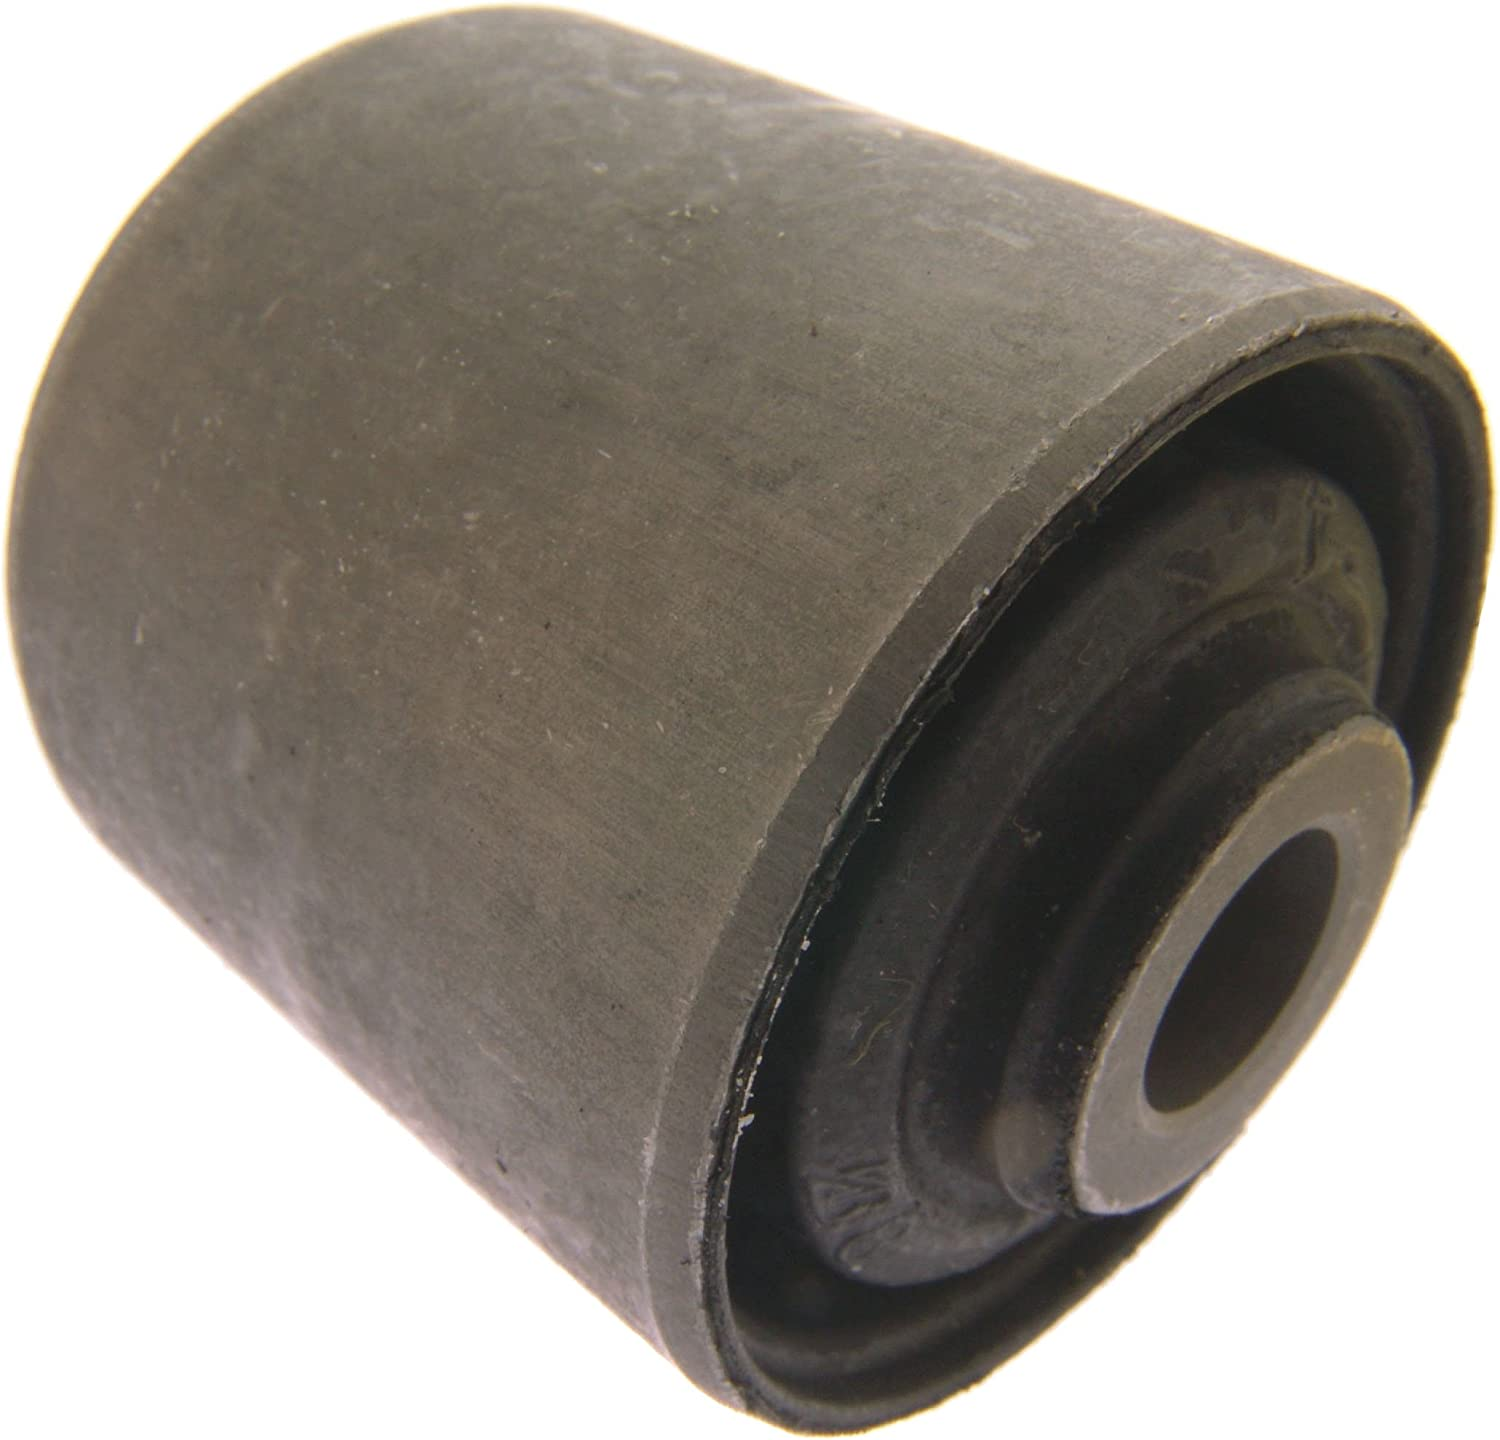 FEBEST MAB-086 Arm Bushing for Upper Lateral Control Rod